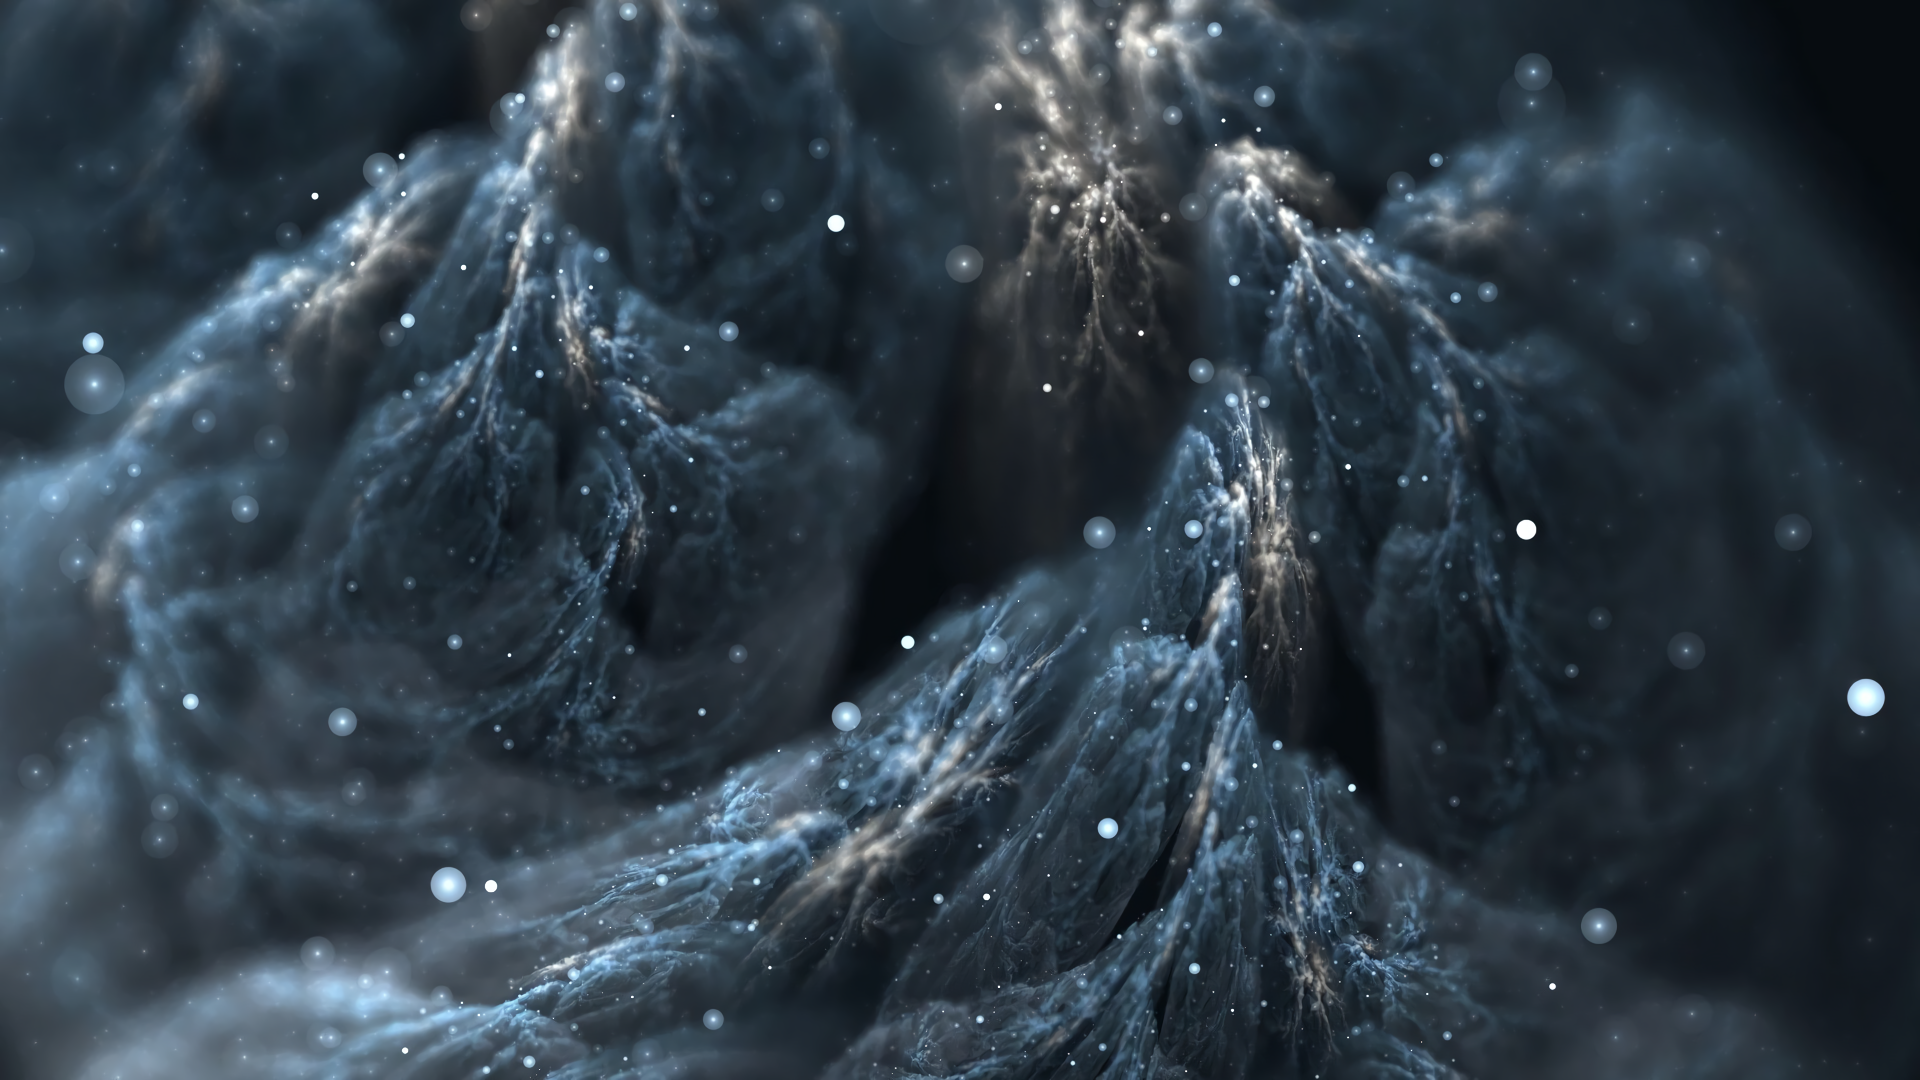 Abstract - Smoke  Blue Artistic Sparkles Gray Close-Up Wallpaper